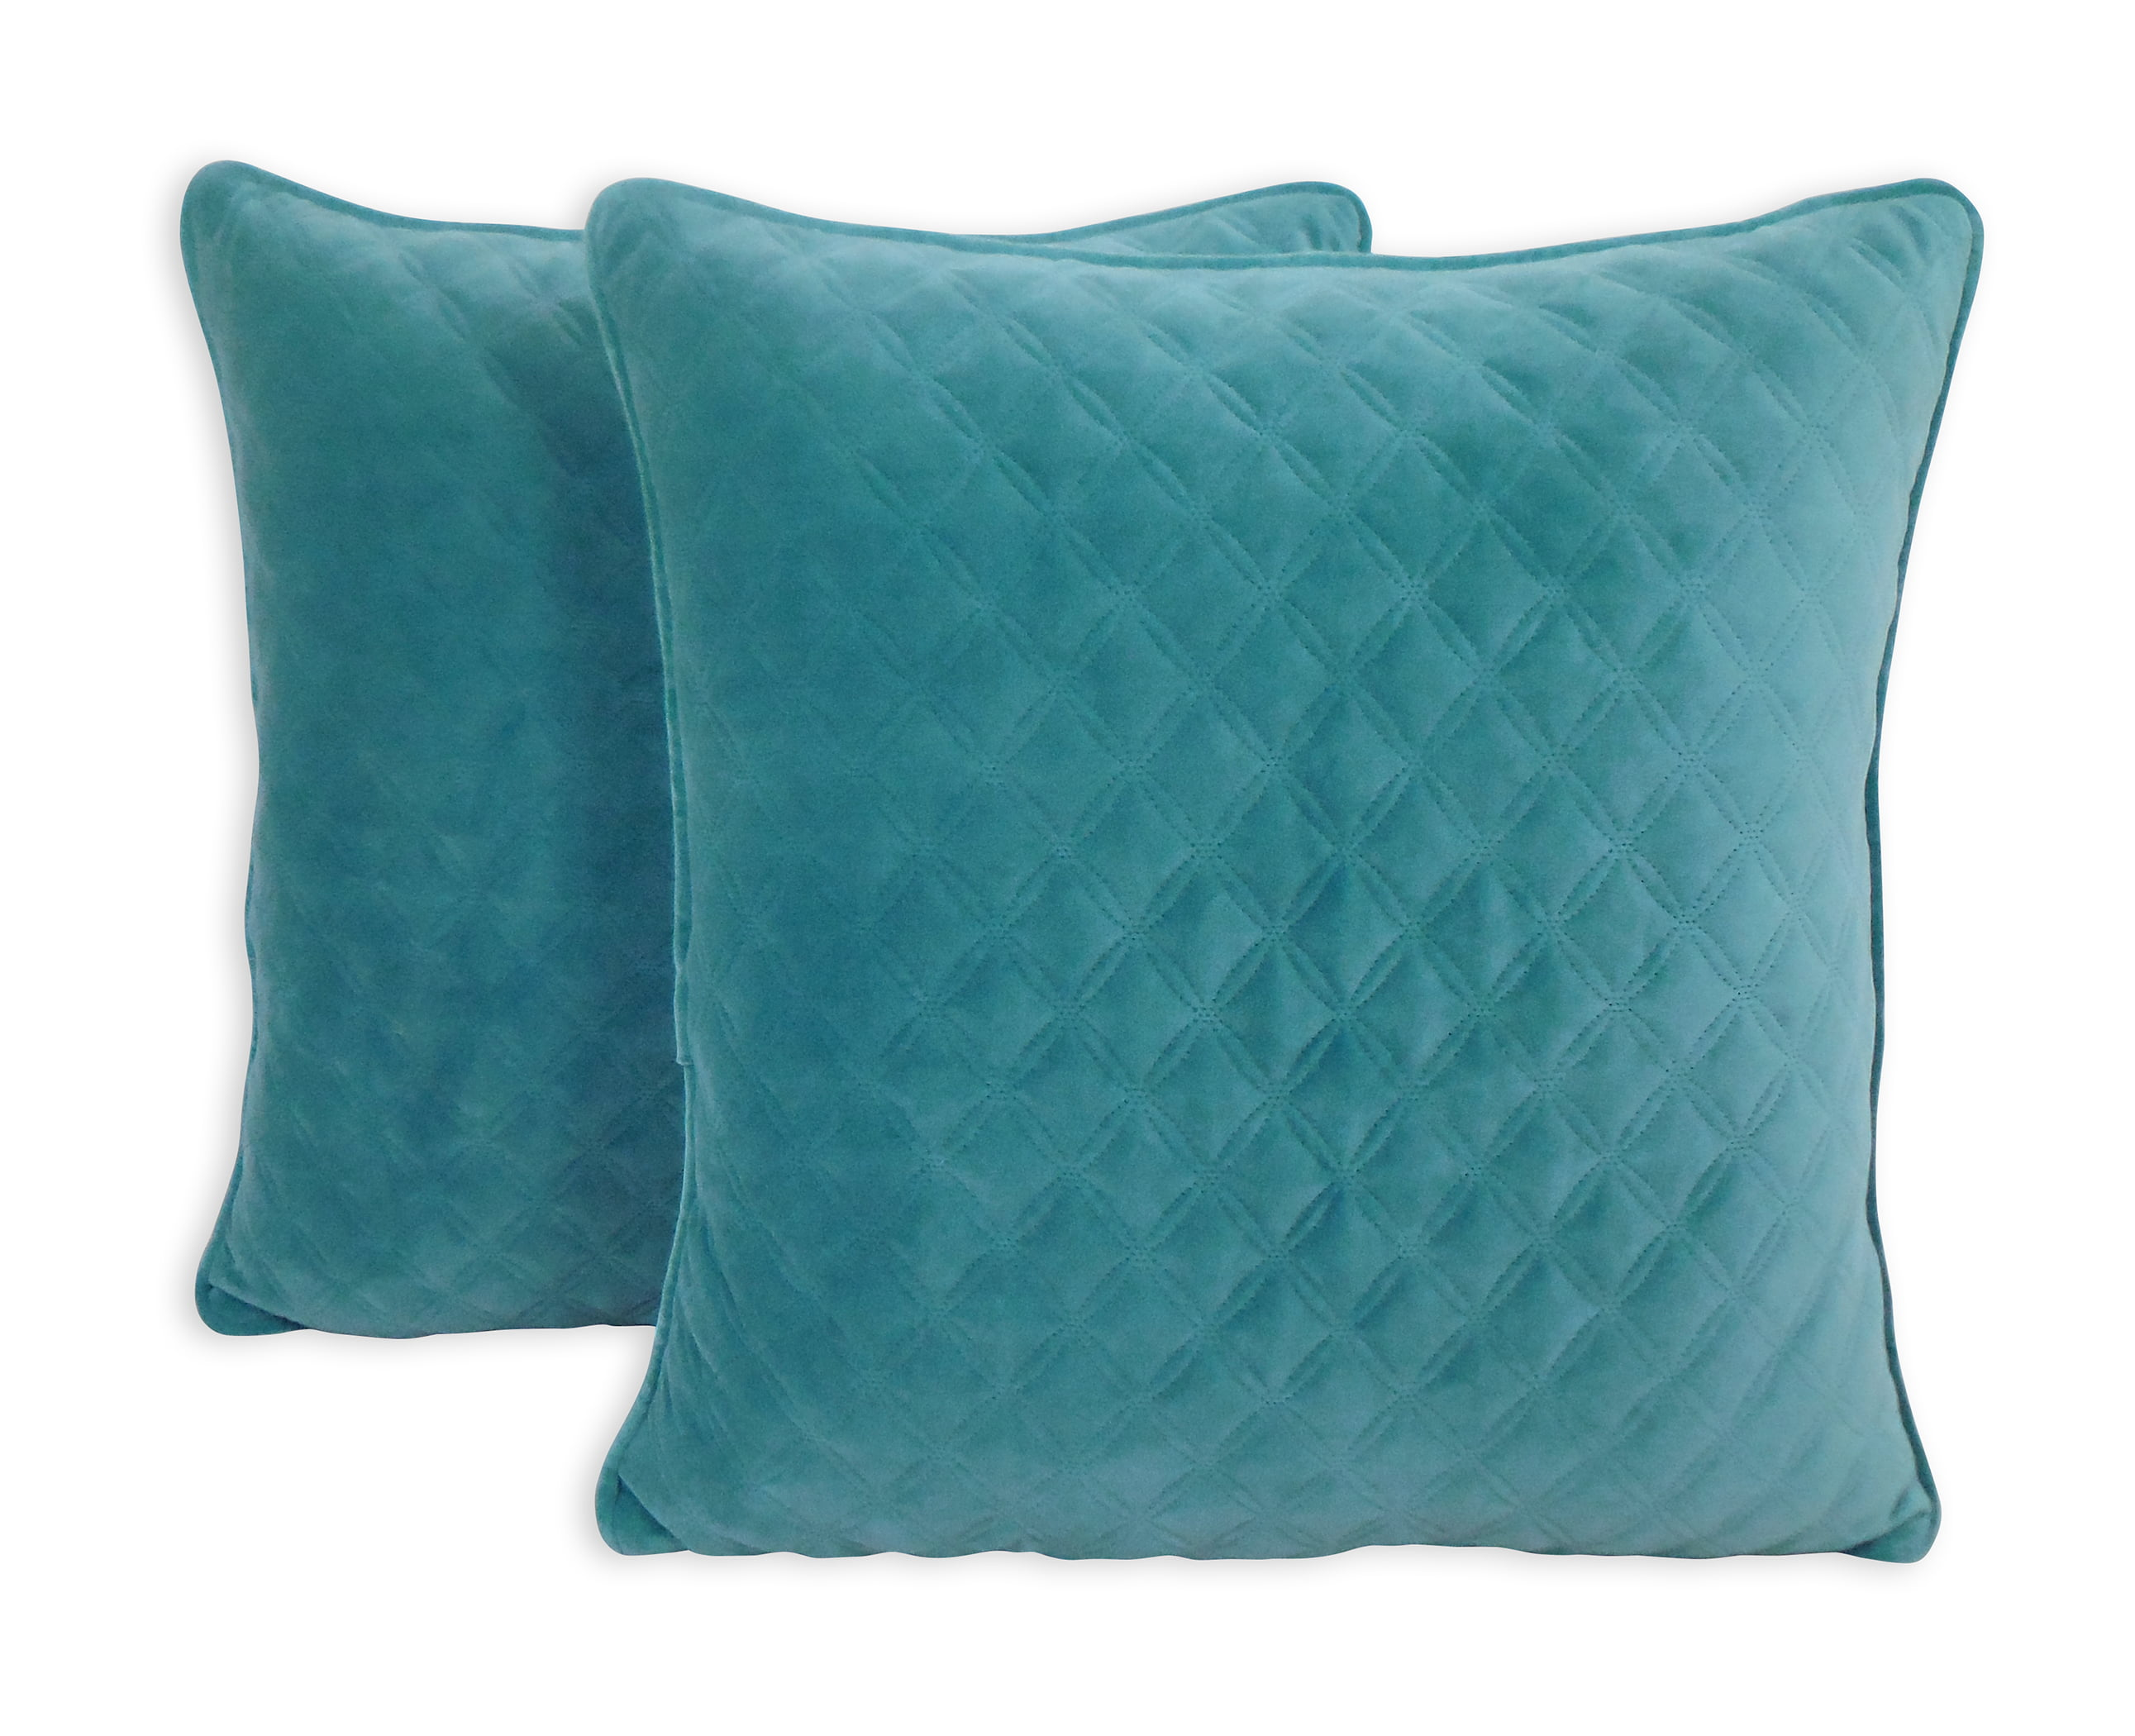 Better Homes and Gardens Quilted Velvet Decorative Throw Pillow, Teal, 2 pack by Arlee Home Fashions